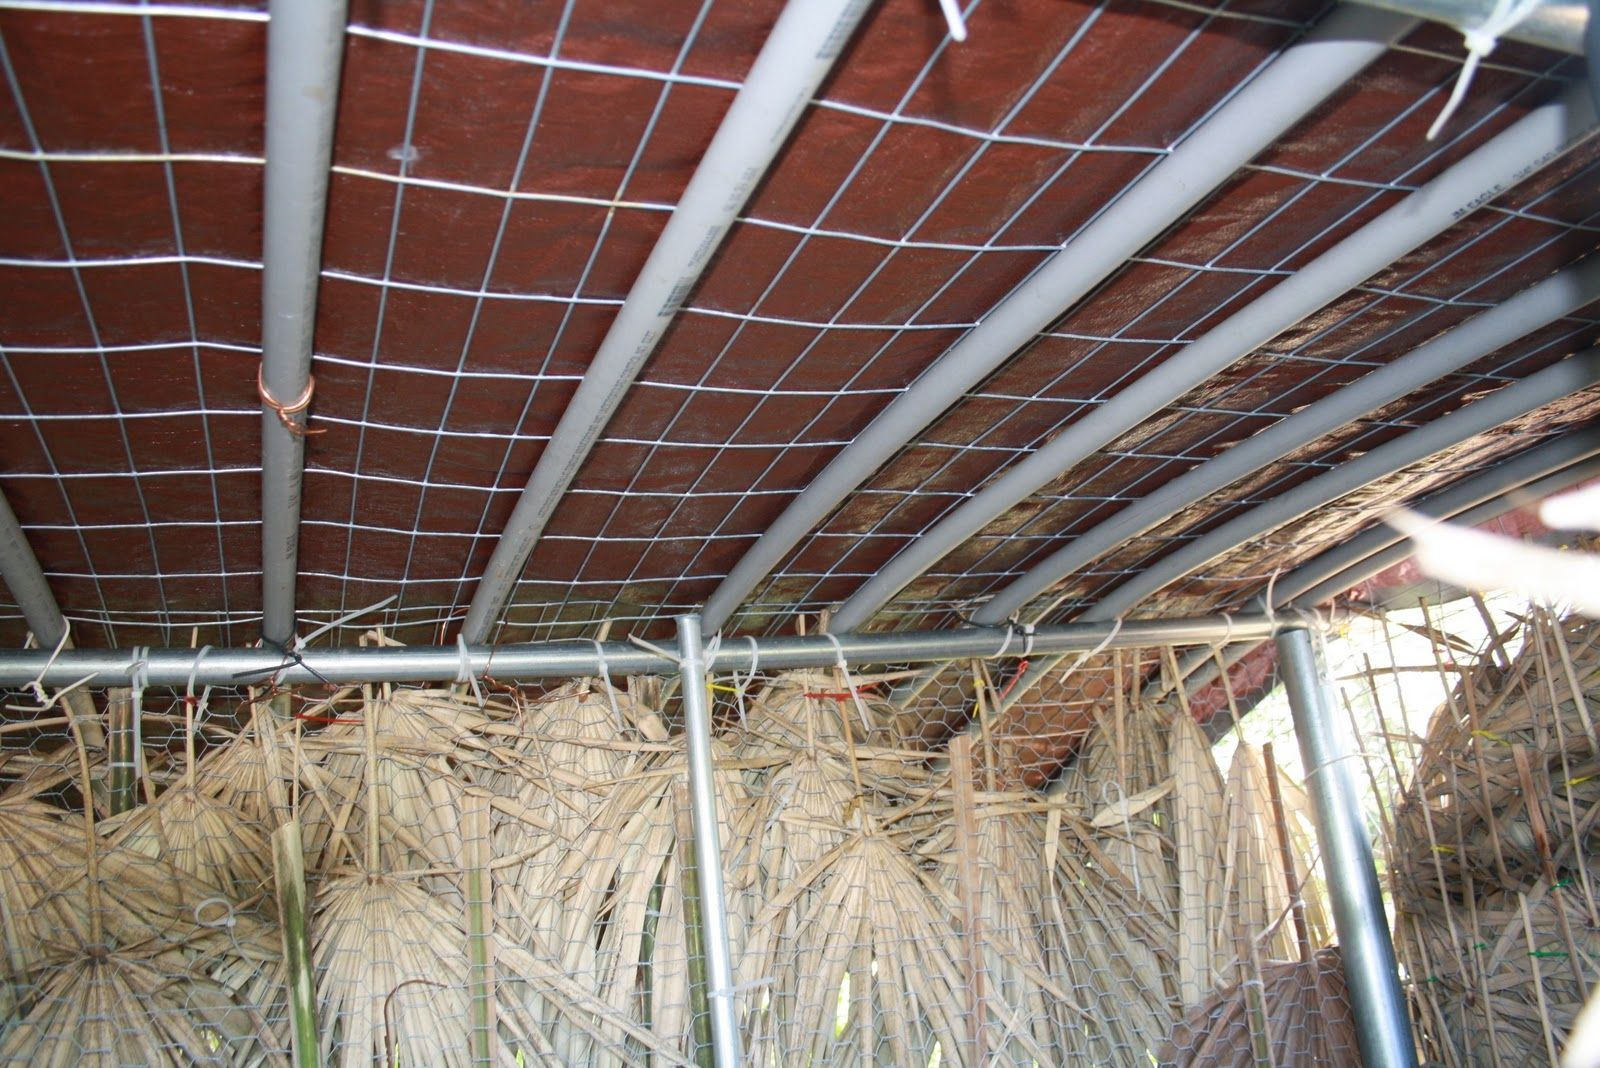 Living Roof Construction Living Roof On Storage Shed Cost Effective Roof Frame Construction Roof Framing Living Roofs Living Green Roof